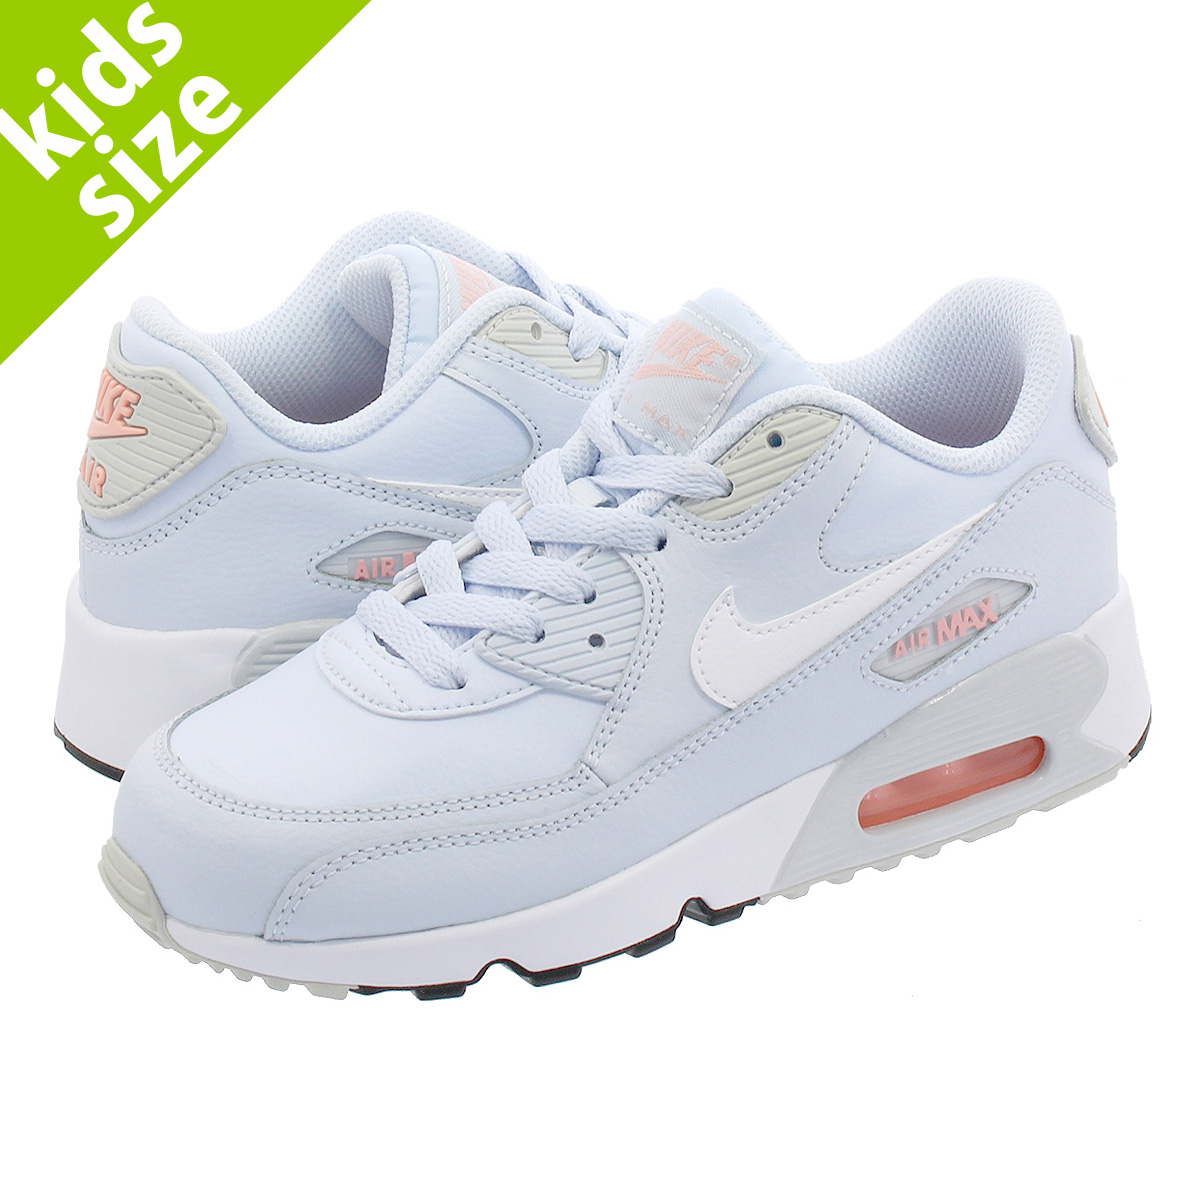 df1080e666 NIKE AIR MAX 90 LTR PS Kie Ney AMAX 90 leather PS HALF BLUE/PURE ...